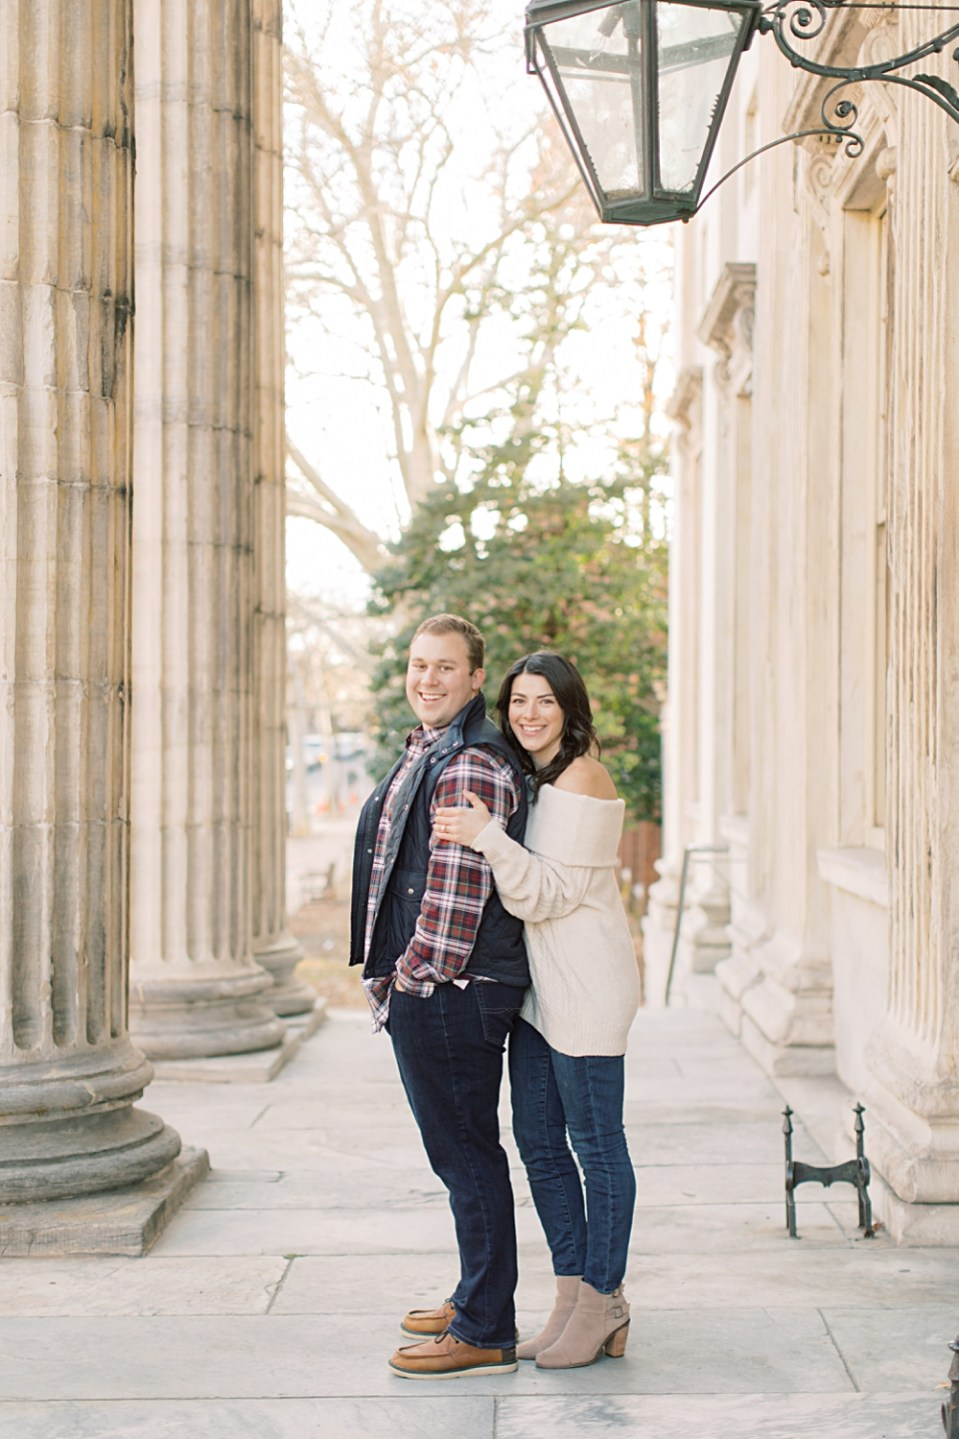 Old City Philadelphia Engagement Session | Wedding photographer Sarah Canning